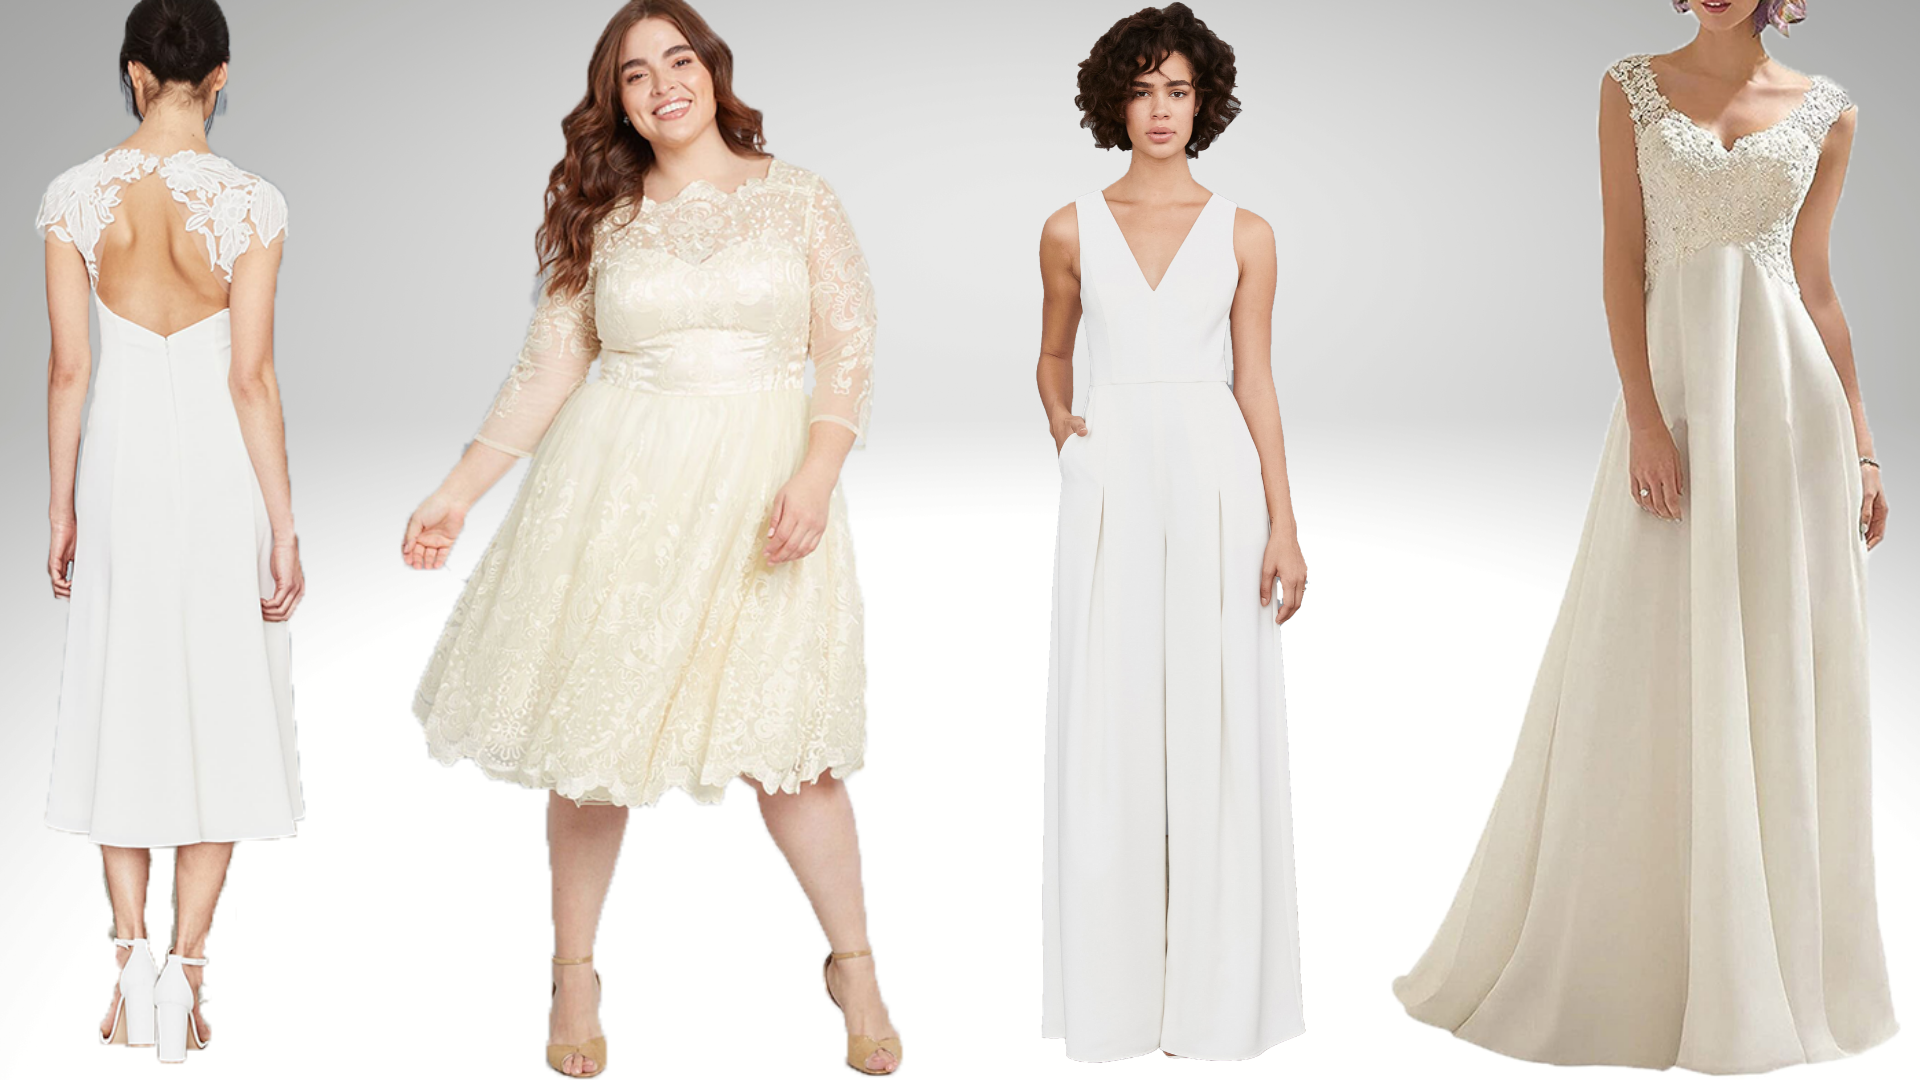 The Perfect Courthouse Wedding Dress For Your Special Day,Evening Dresses For Wedding Guests